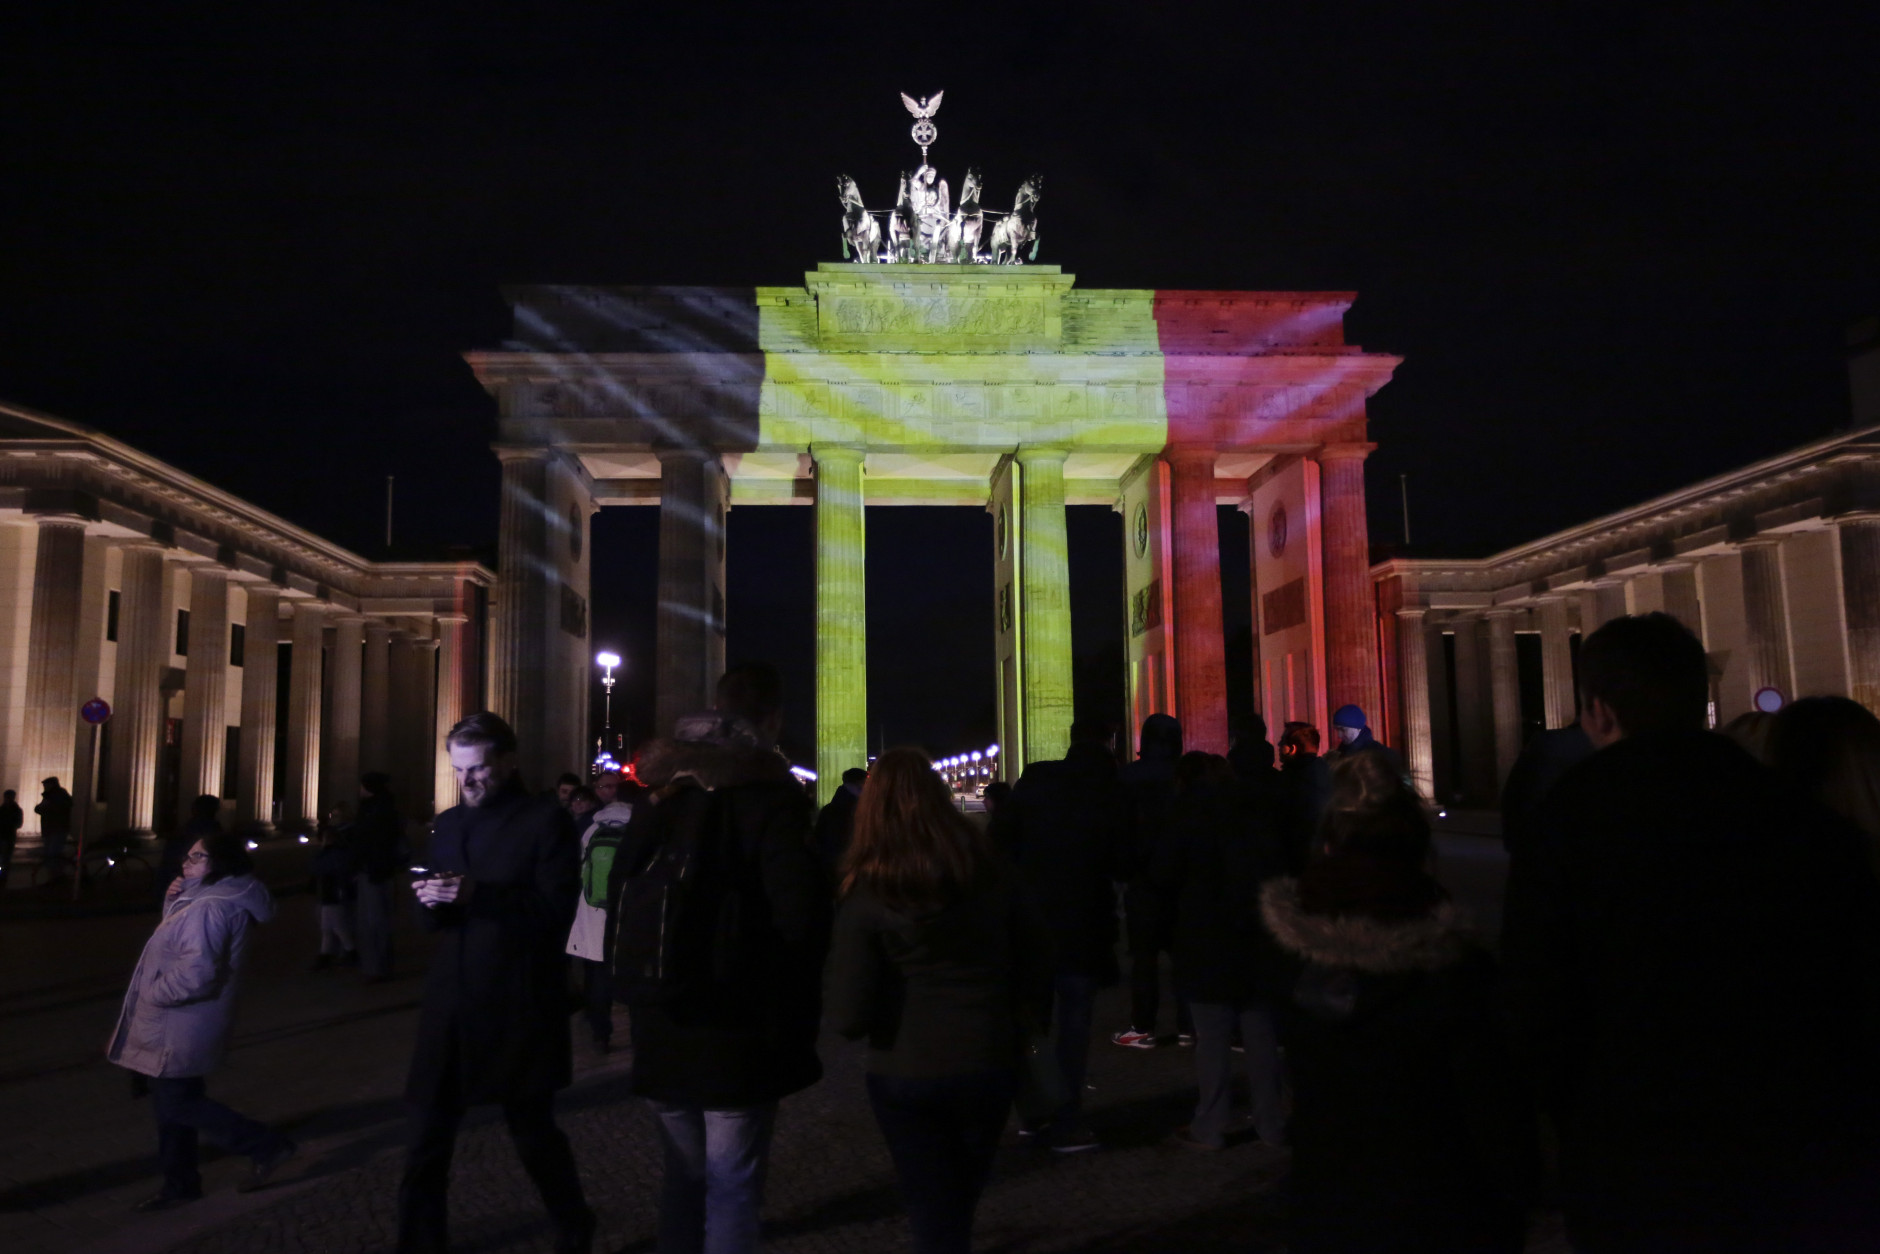 The Brandenburg Gate is illuminated with the Belgium national flag in reaction to the Brussels attacks, in Berlin, Germany, Tuesday, March 22, 2016. (AP Photo/Markus Schreiber)